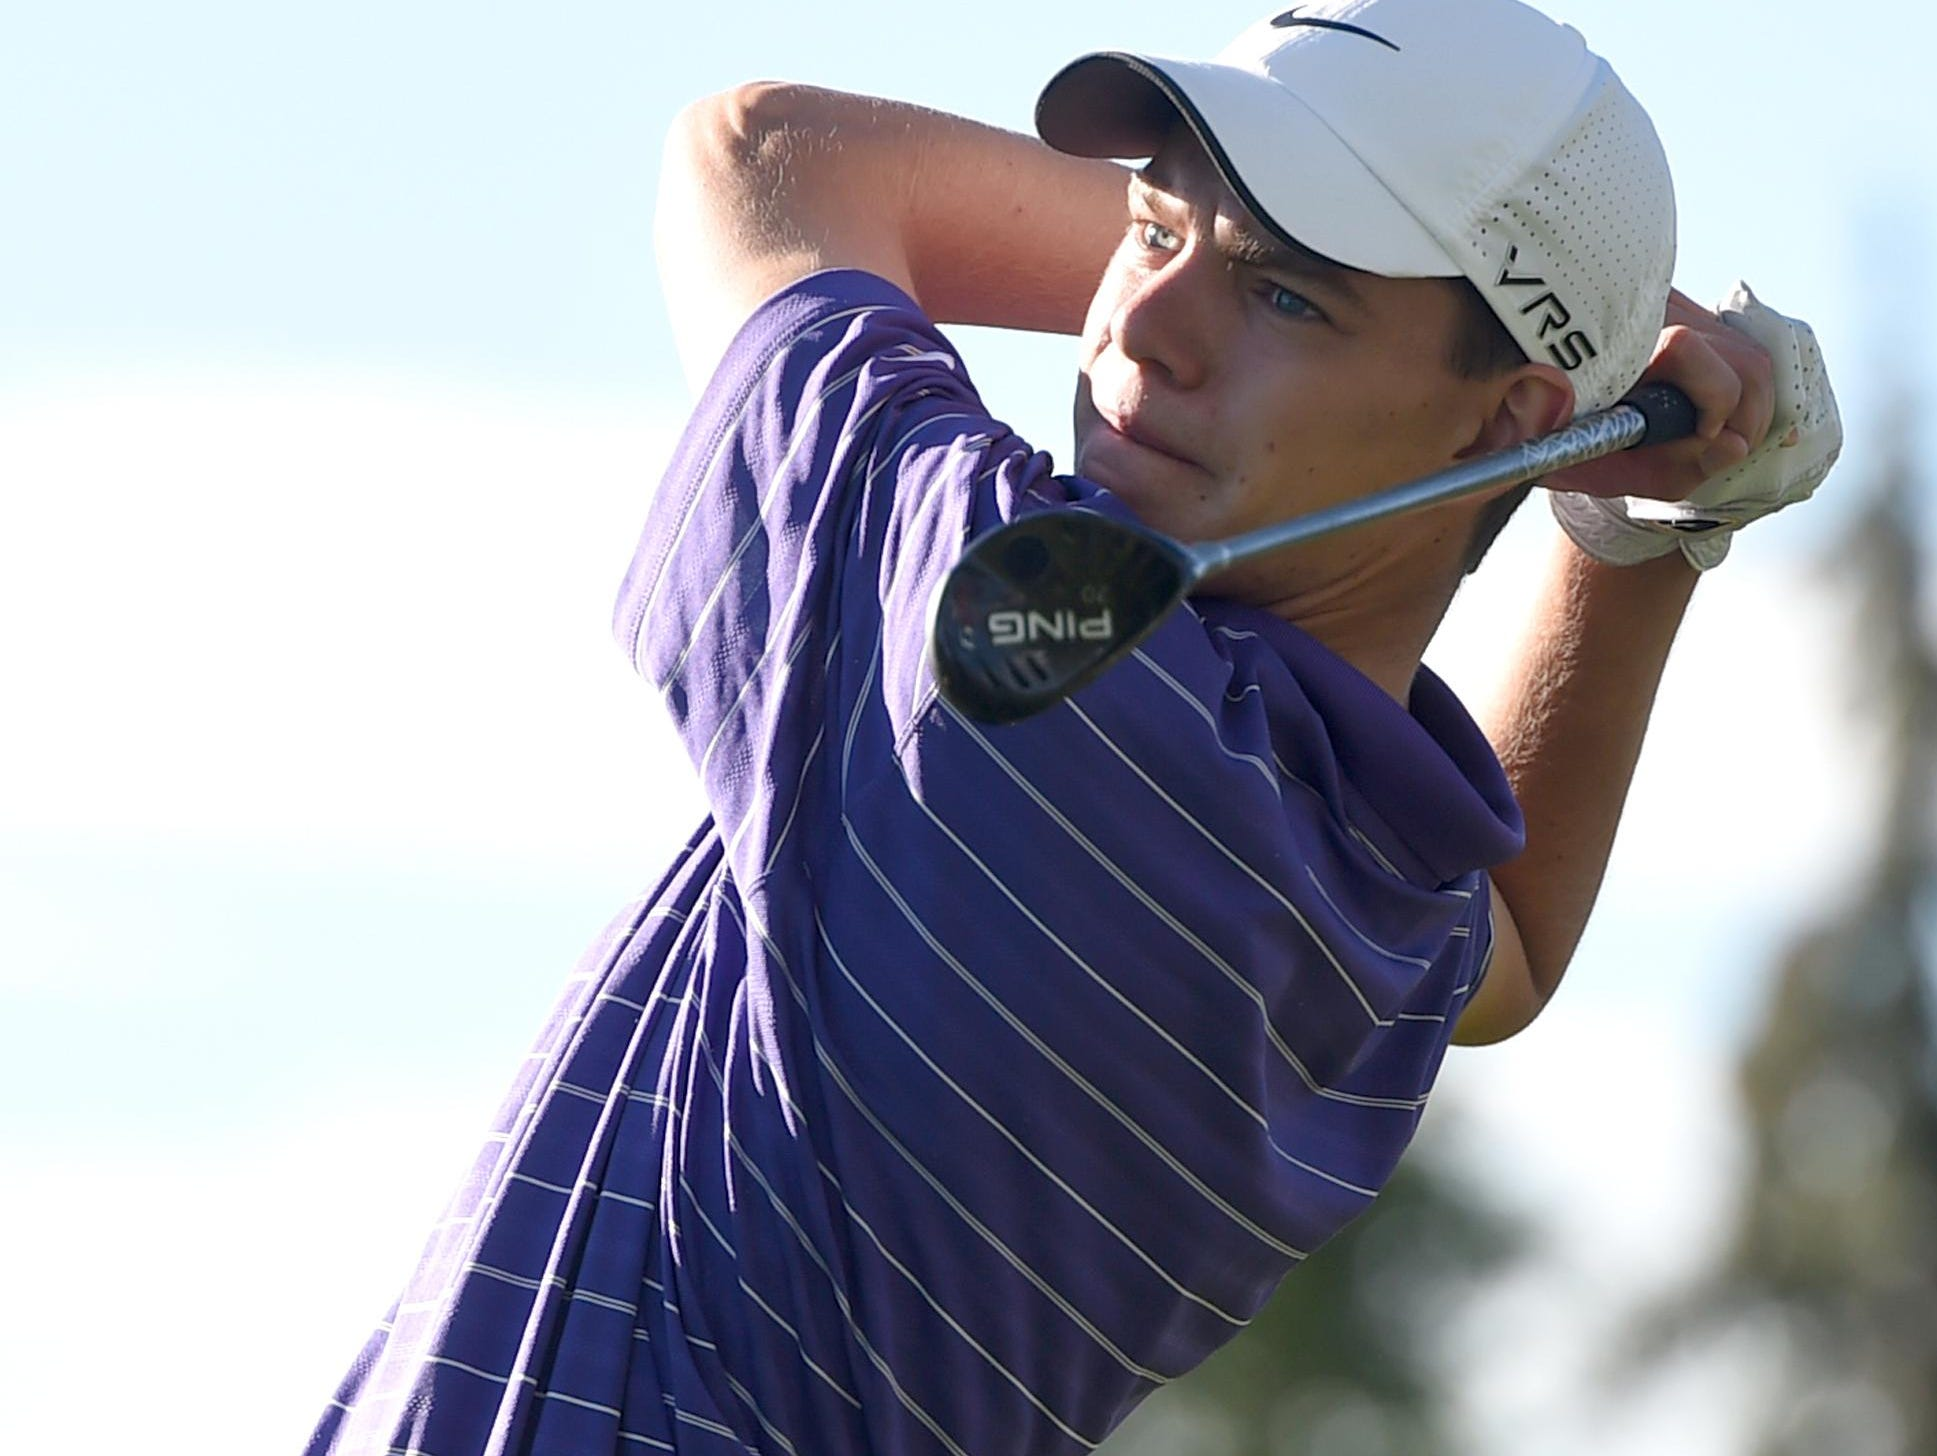 Fort Collins High School's AJ Ott, shown in a file photo, won Monday's Front Range League meet in Greeley with a round of 68.